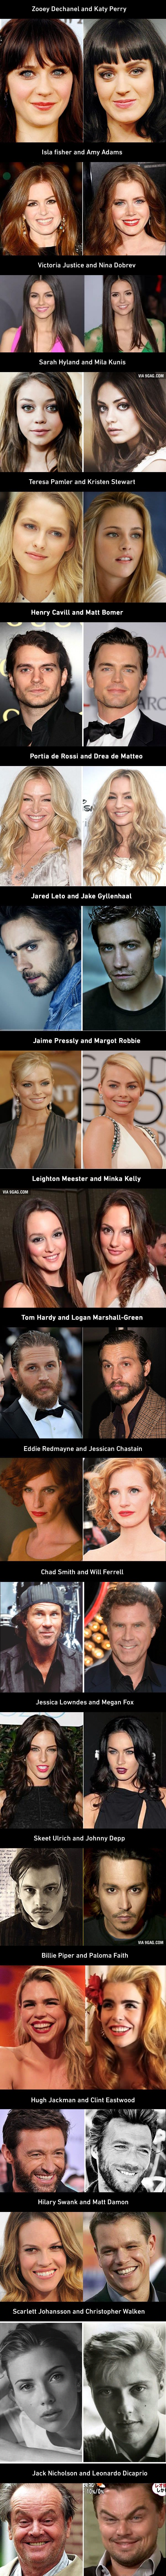 40 Celebrities Who Are So Incredibly Similar That They Look Like Doppelgangers